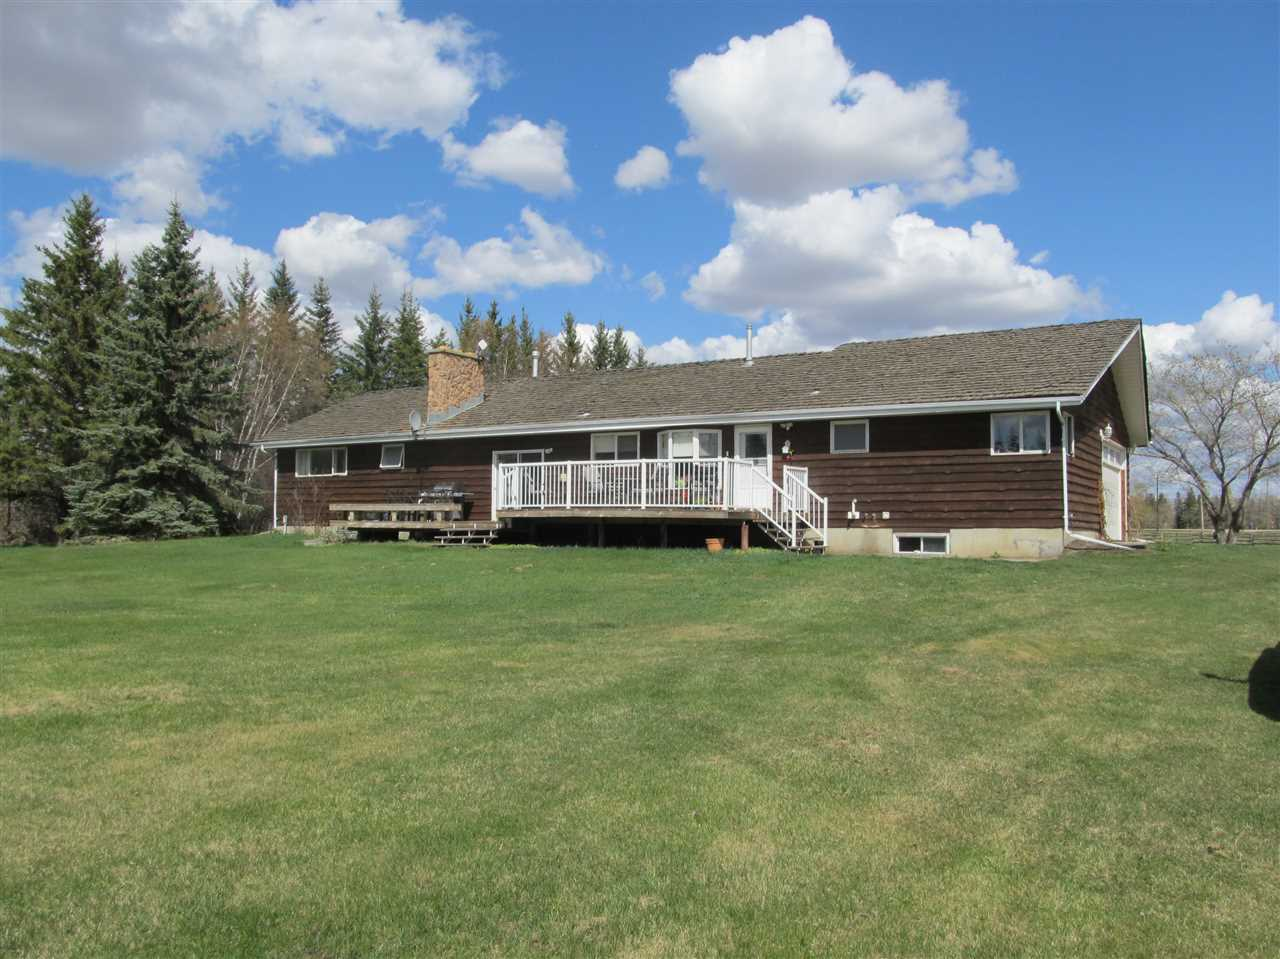 Photo 29: 25308 Twp Rd 570: Rural Sturgeon County House for sale : MLS(r) # E4063269